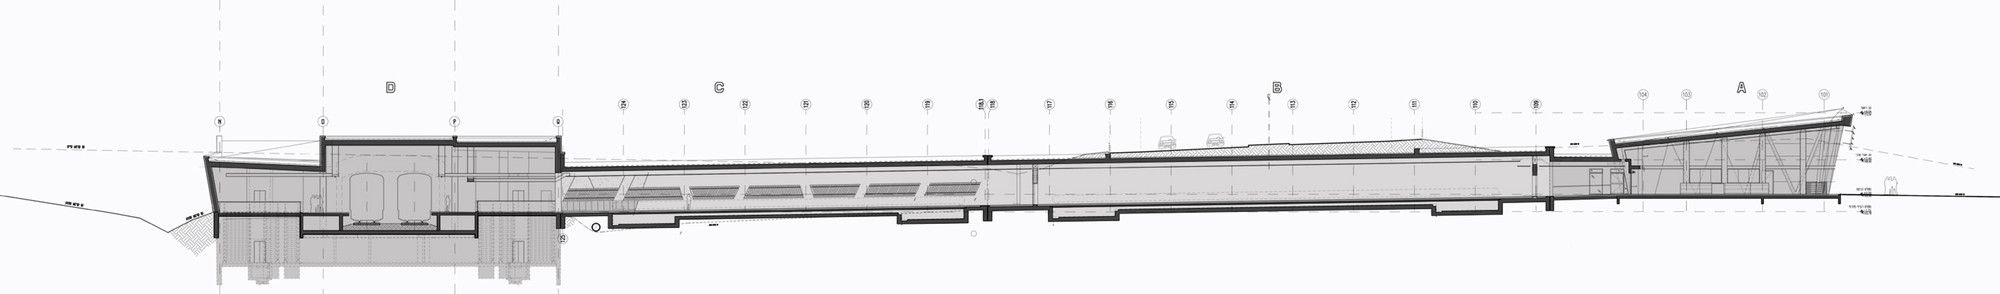 Gallery of Sderot Train Station / Ami Shinar – Amir Mann Architects and Planners - 19